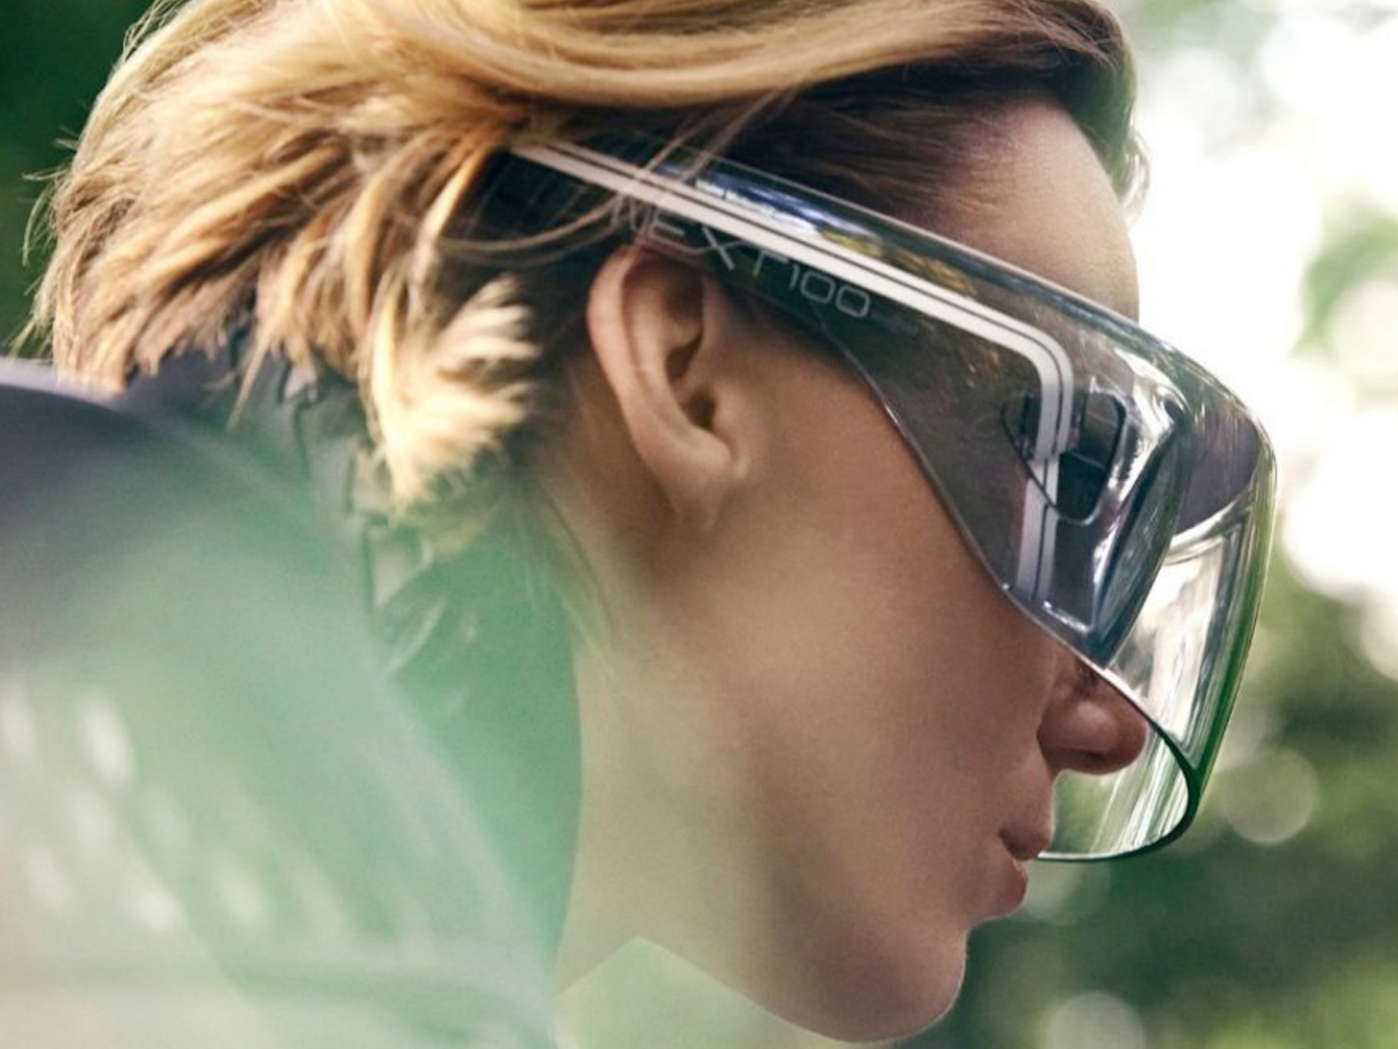 Simply put on these glasses and let the motorcycle do (most of) the work.